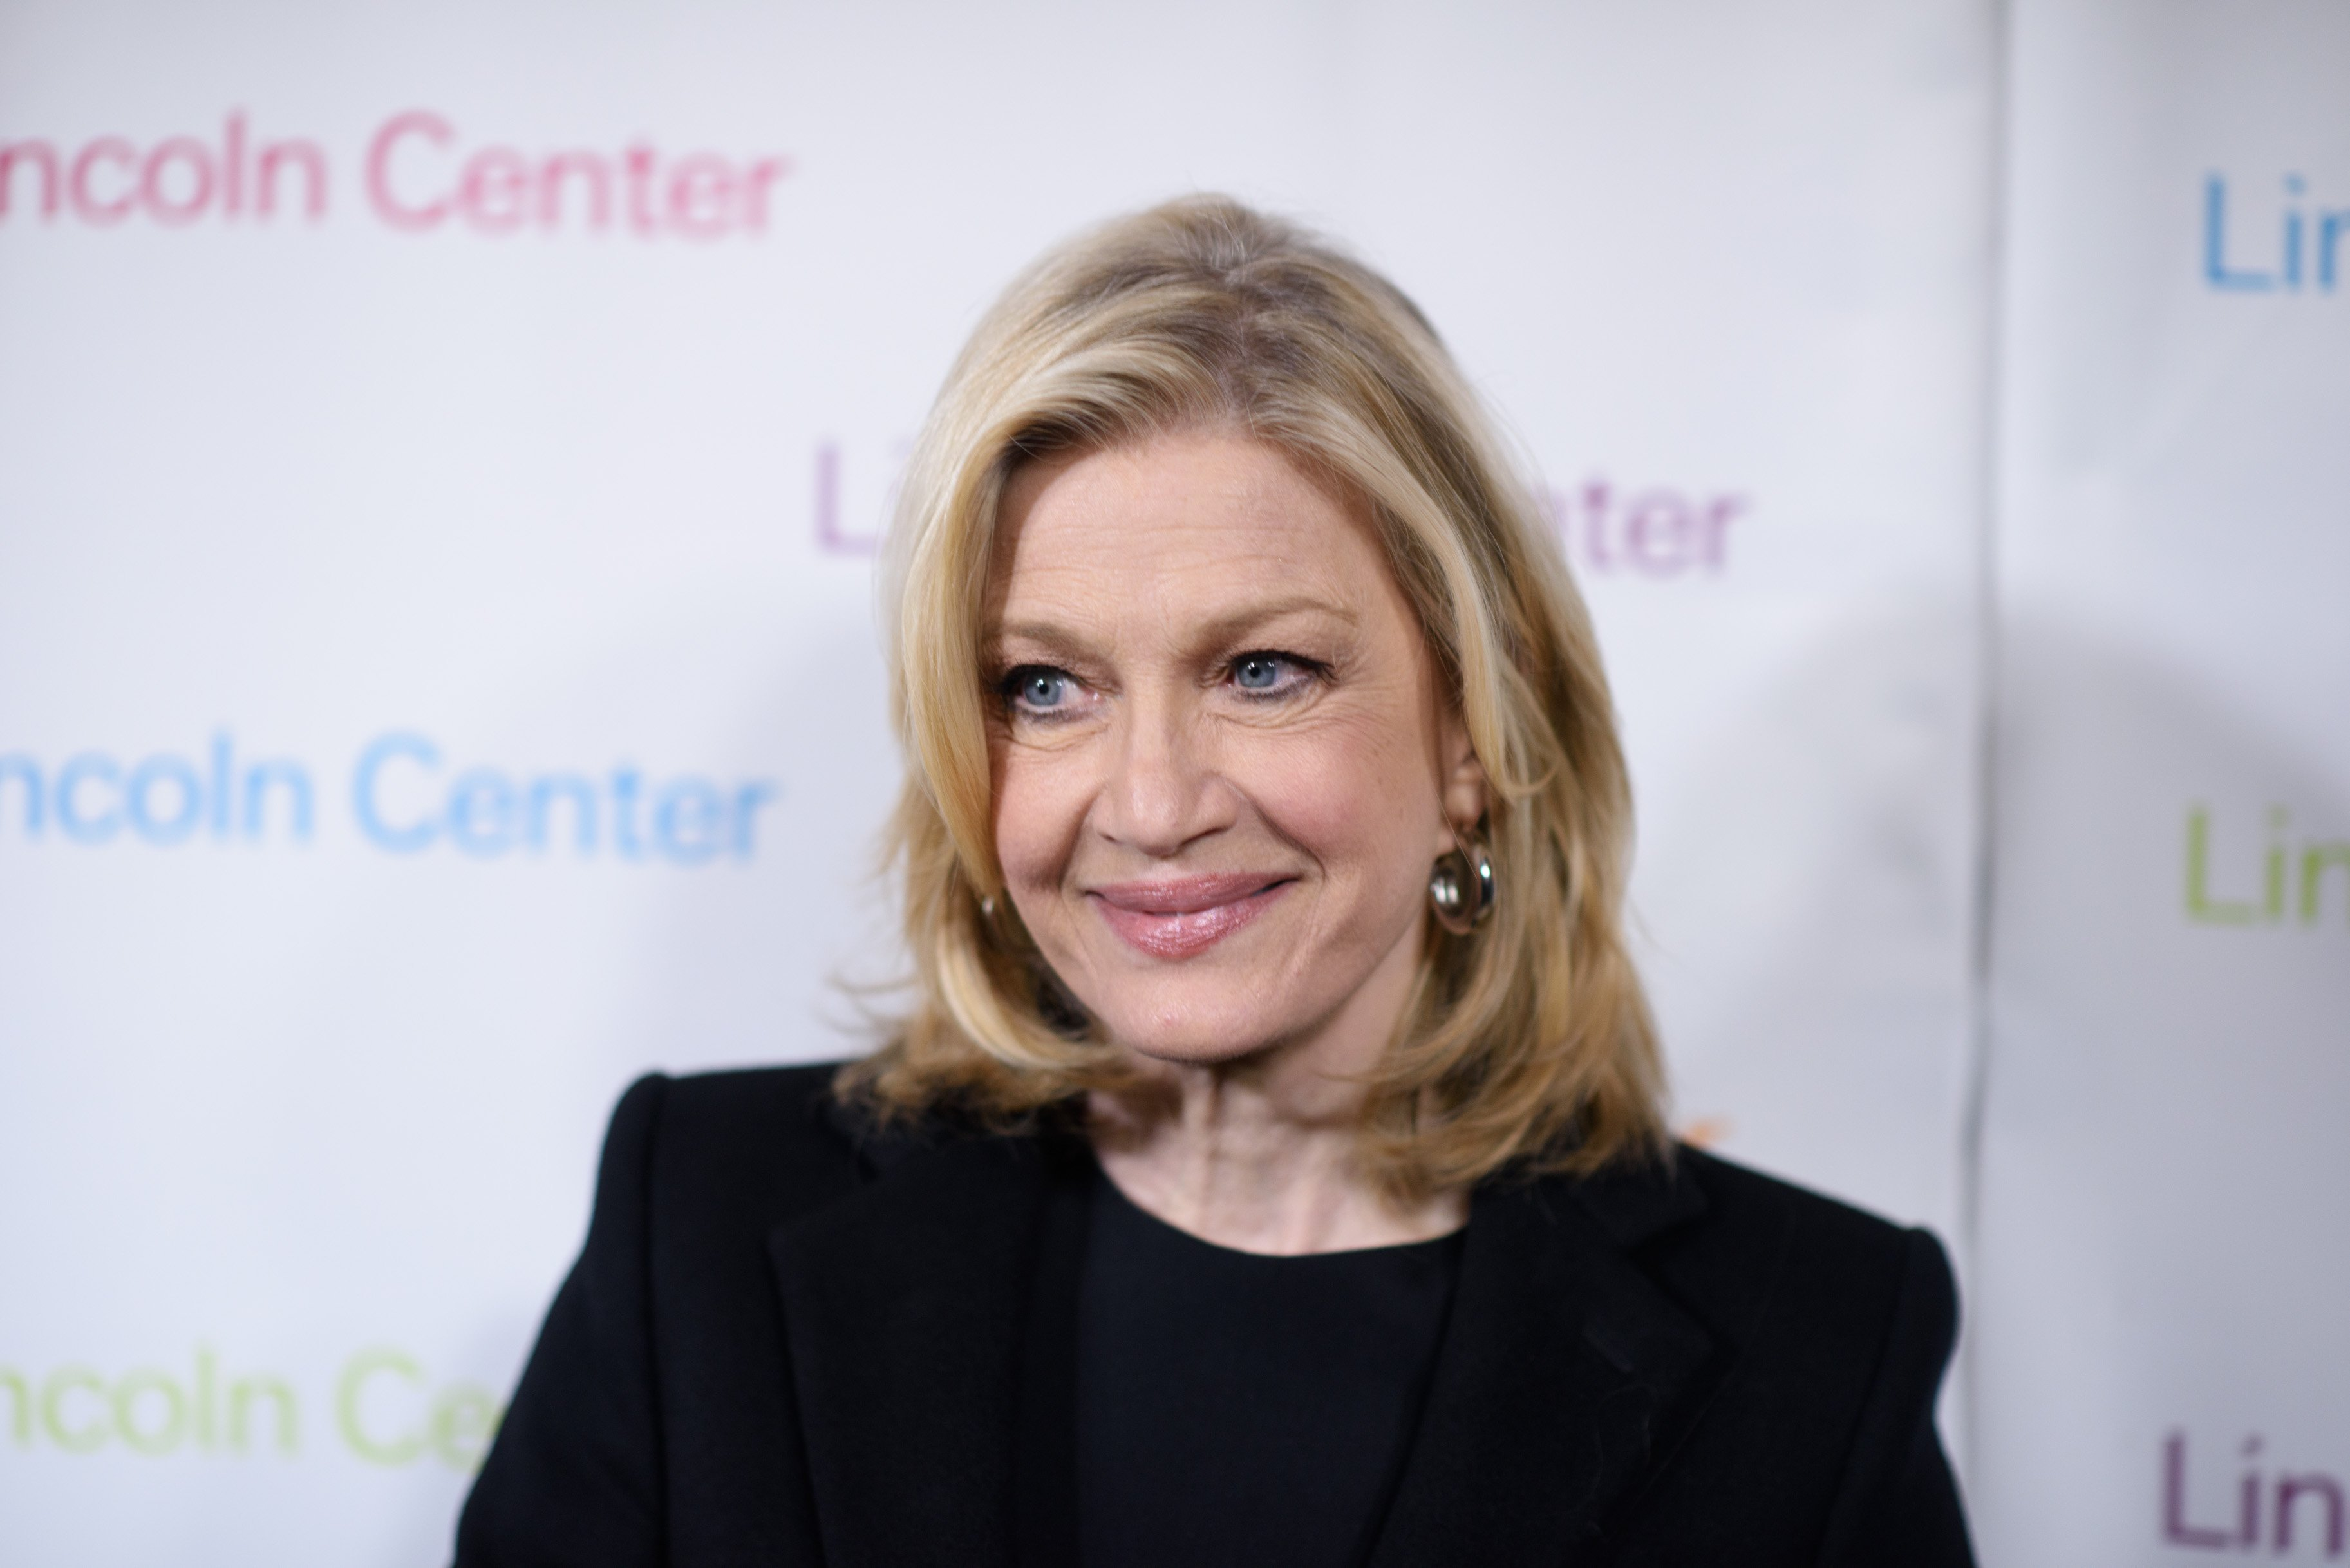 Diane Sawyer Image Source: Getty Images.